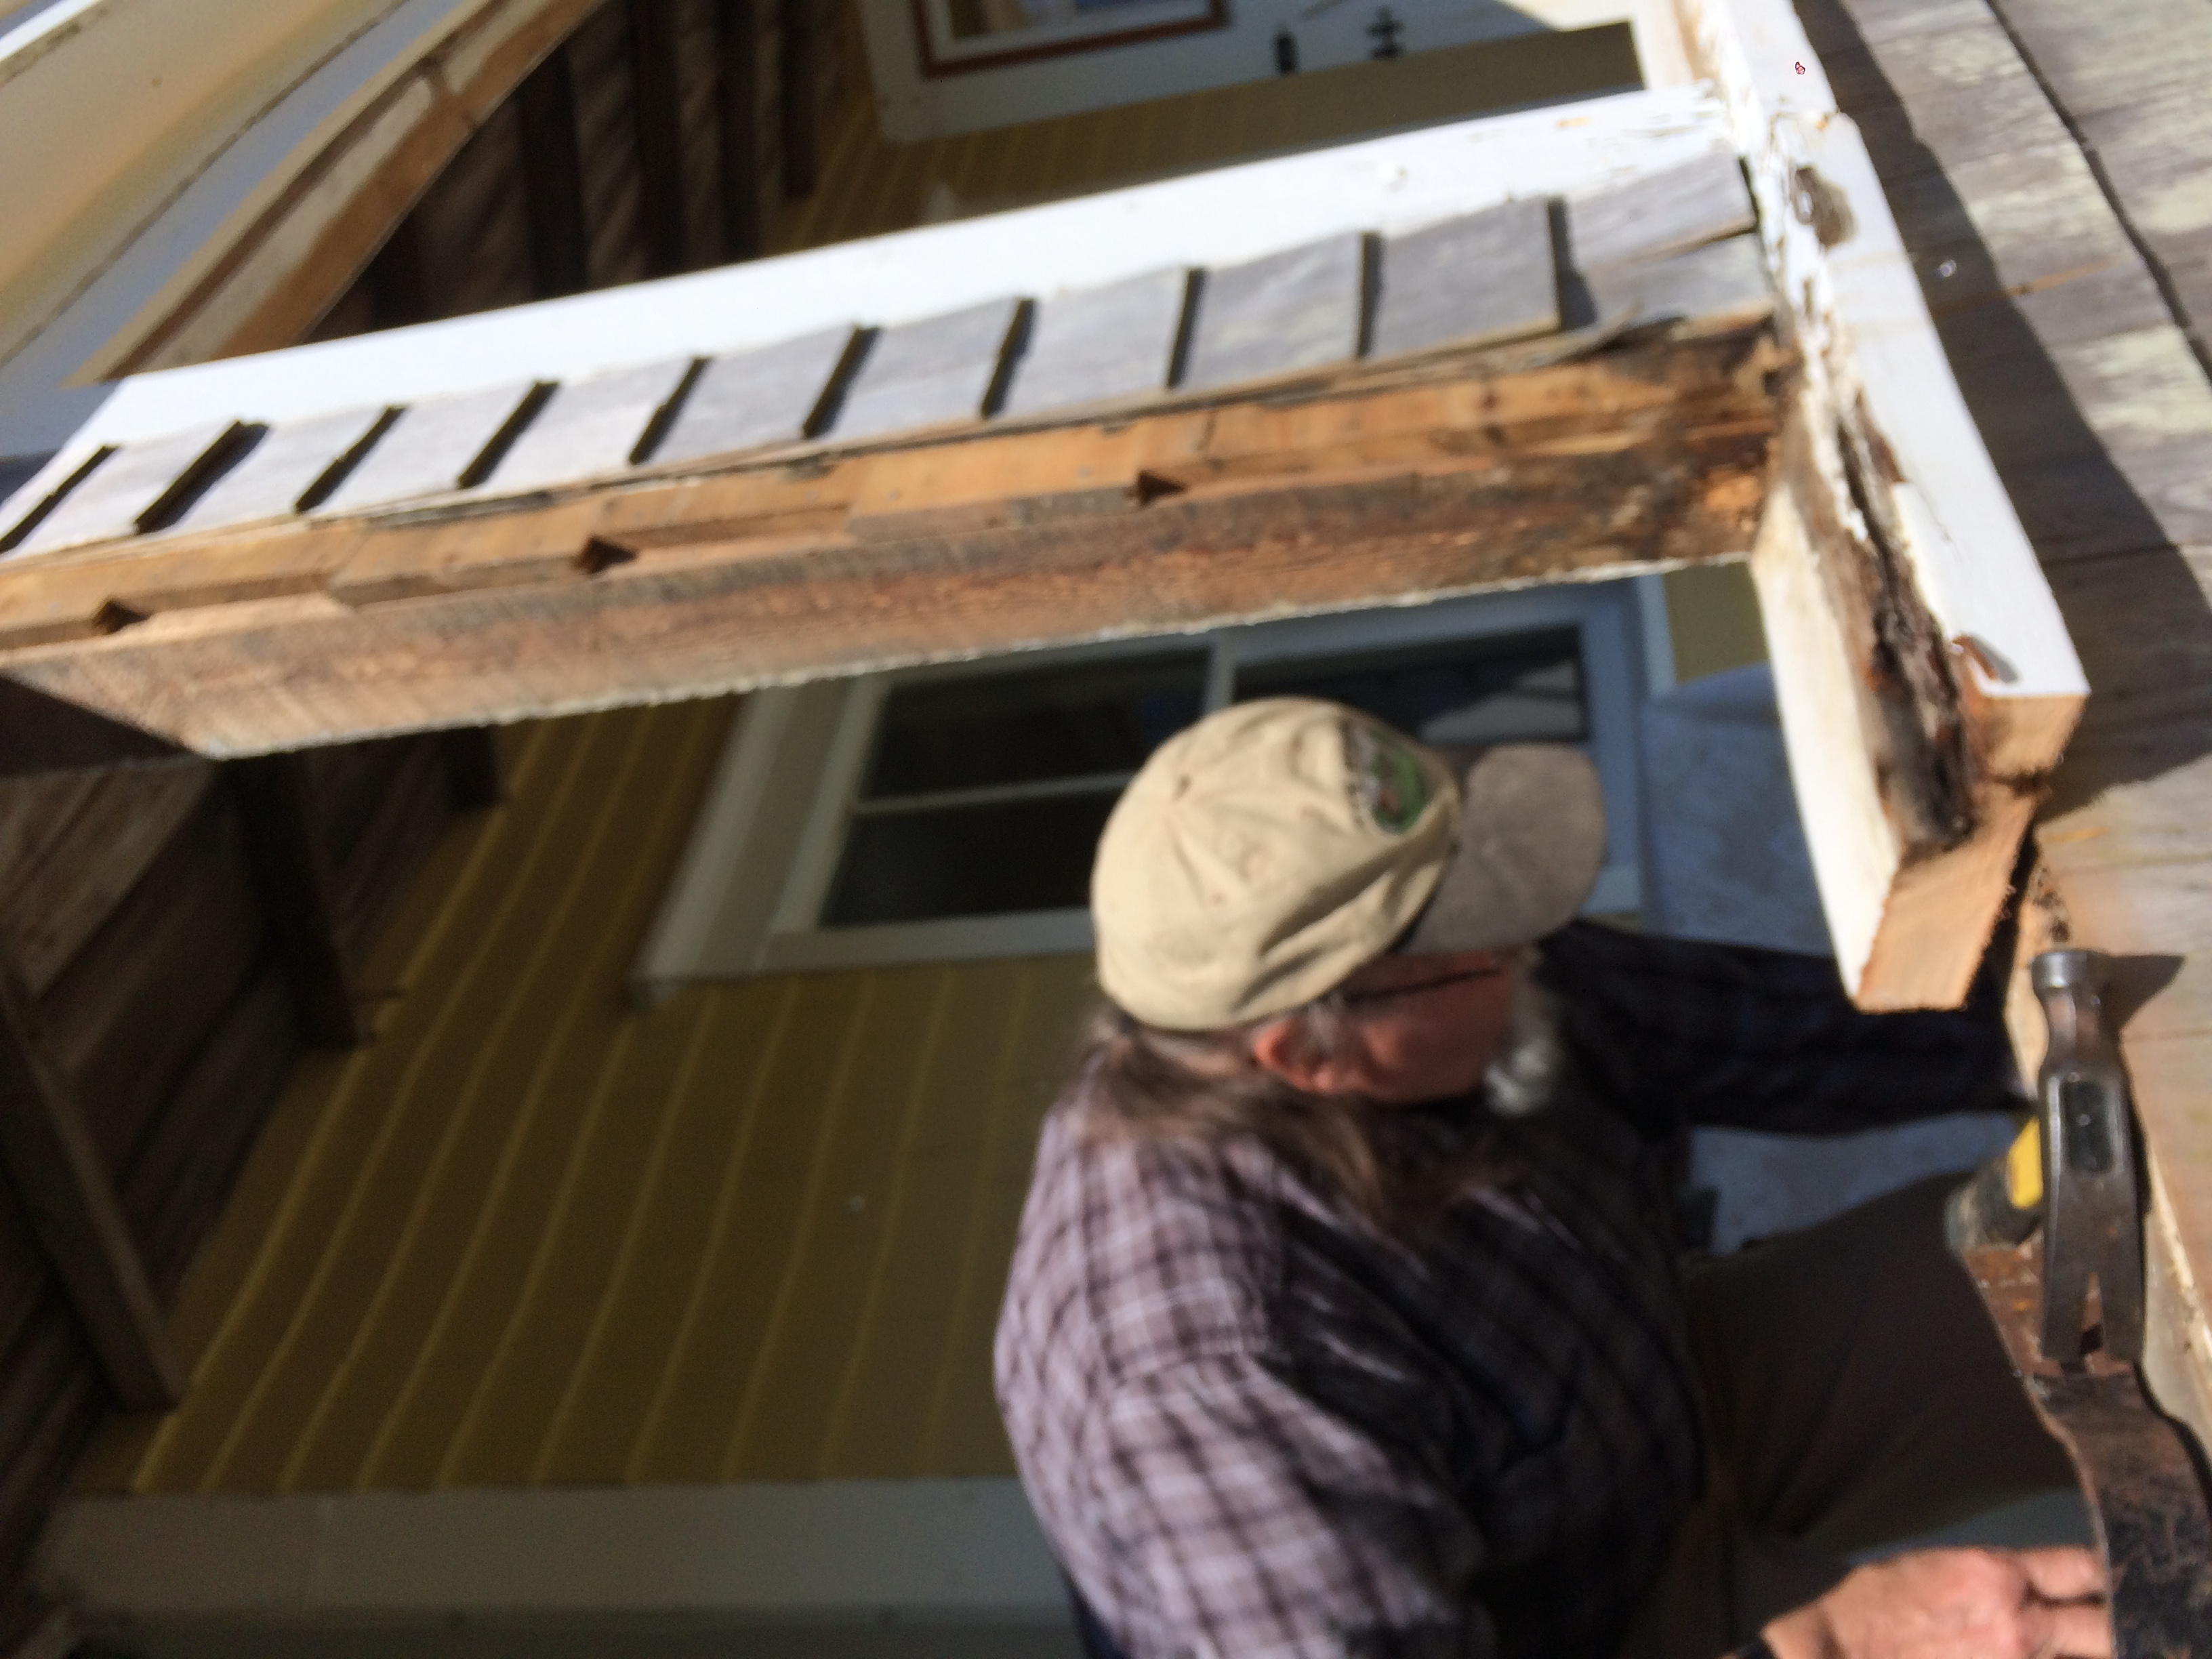 Repairs to the frame and sill -